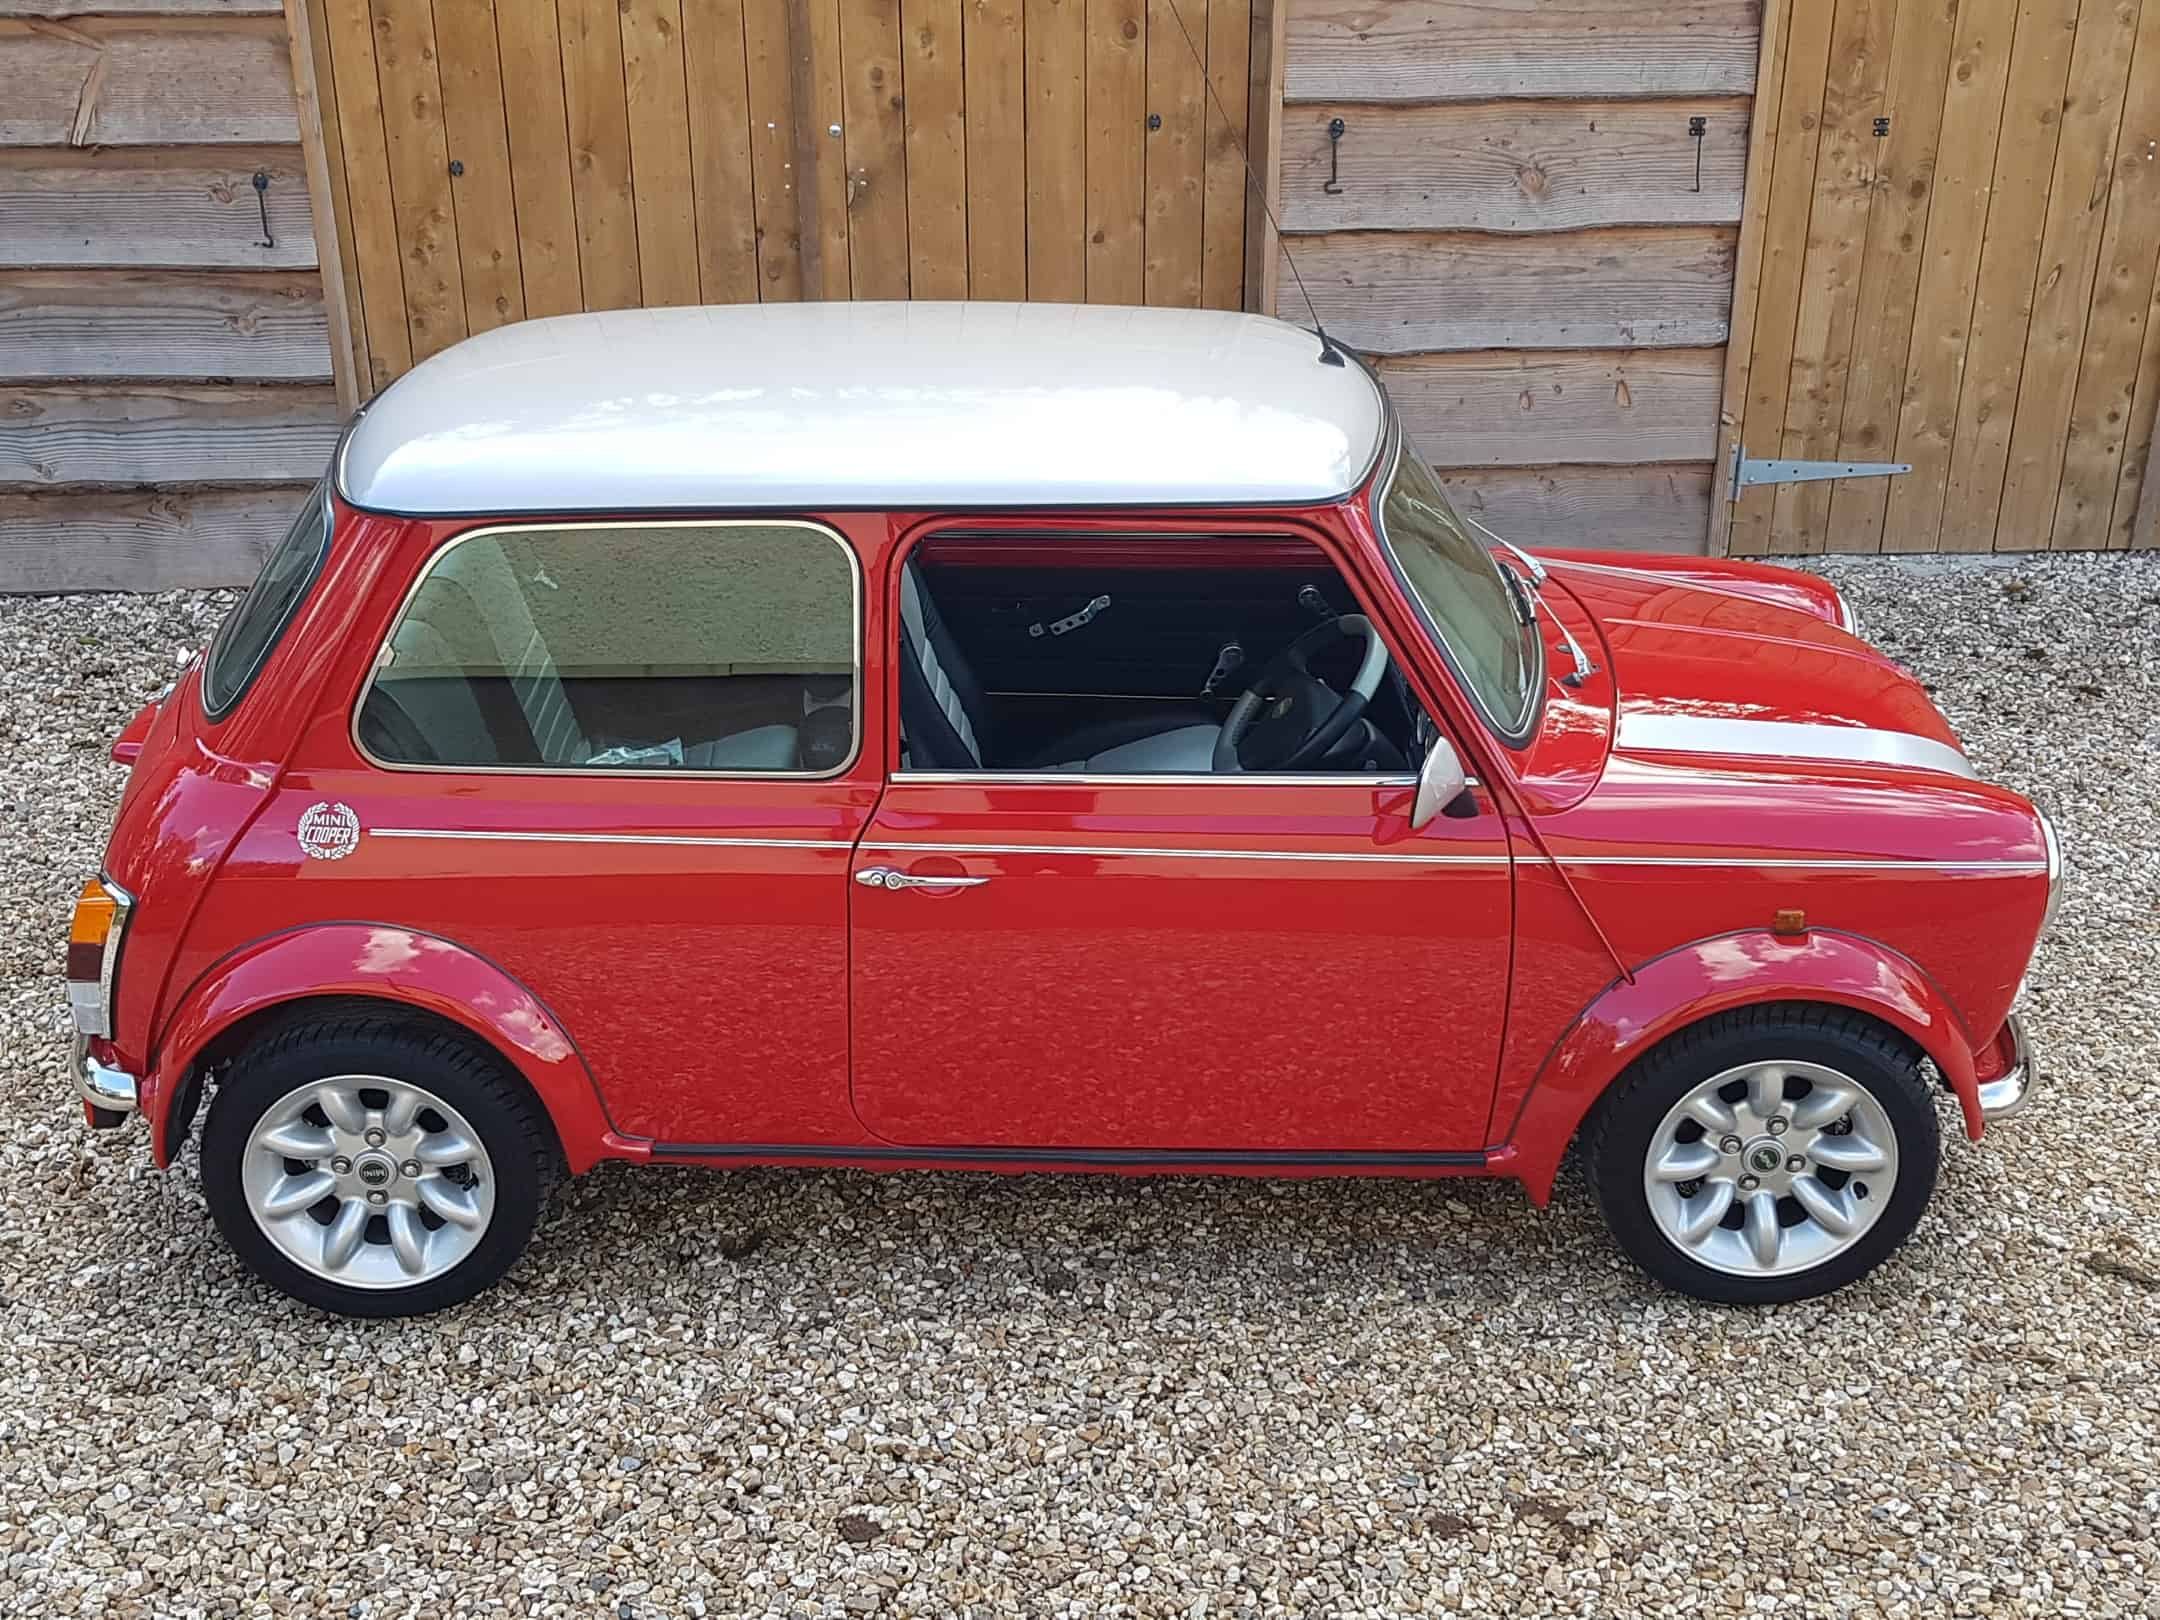 ** COMING SOON** 2000 Rover Mini Cooper Sport On 24900 Miles From New!